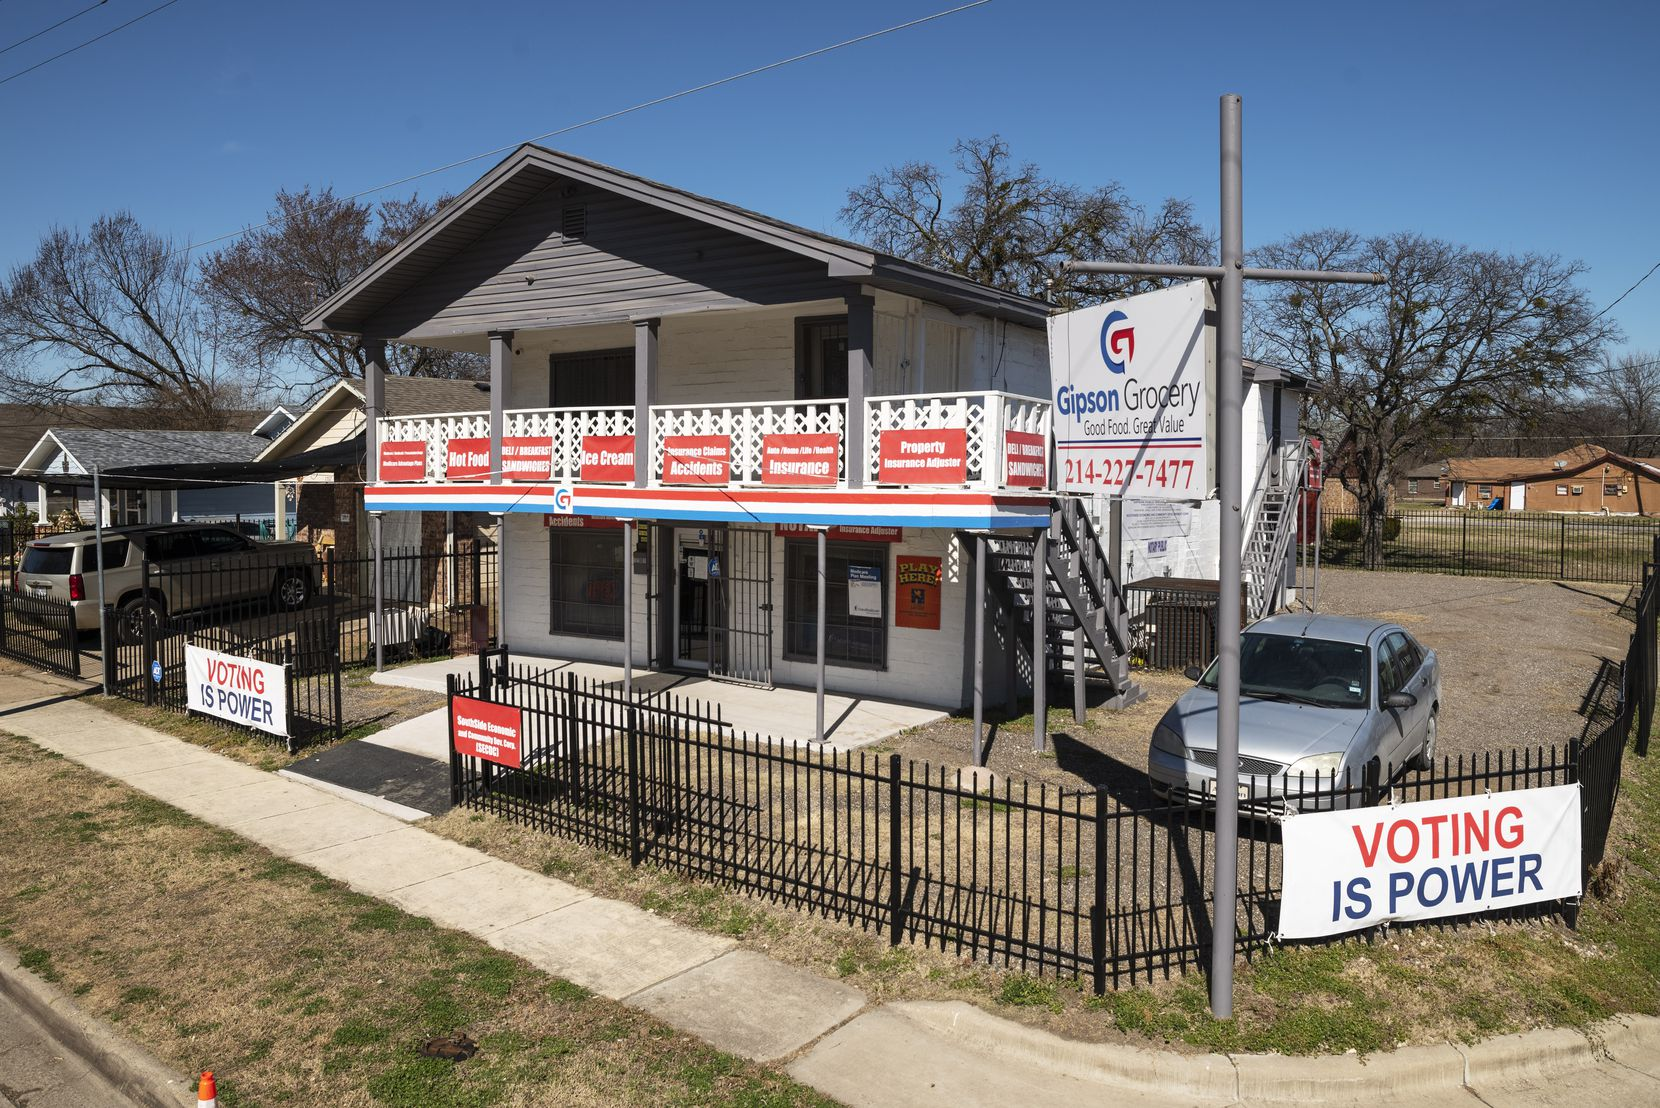 The outside of Gipson Grocery in Dallas, on Tuesday, Feb. 23, 2021. The small neighborhood grocery store is one of the longest-running Black-owned grocery stores in North Texas and the nation.